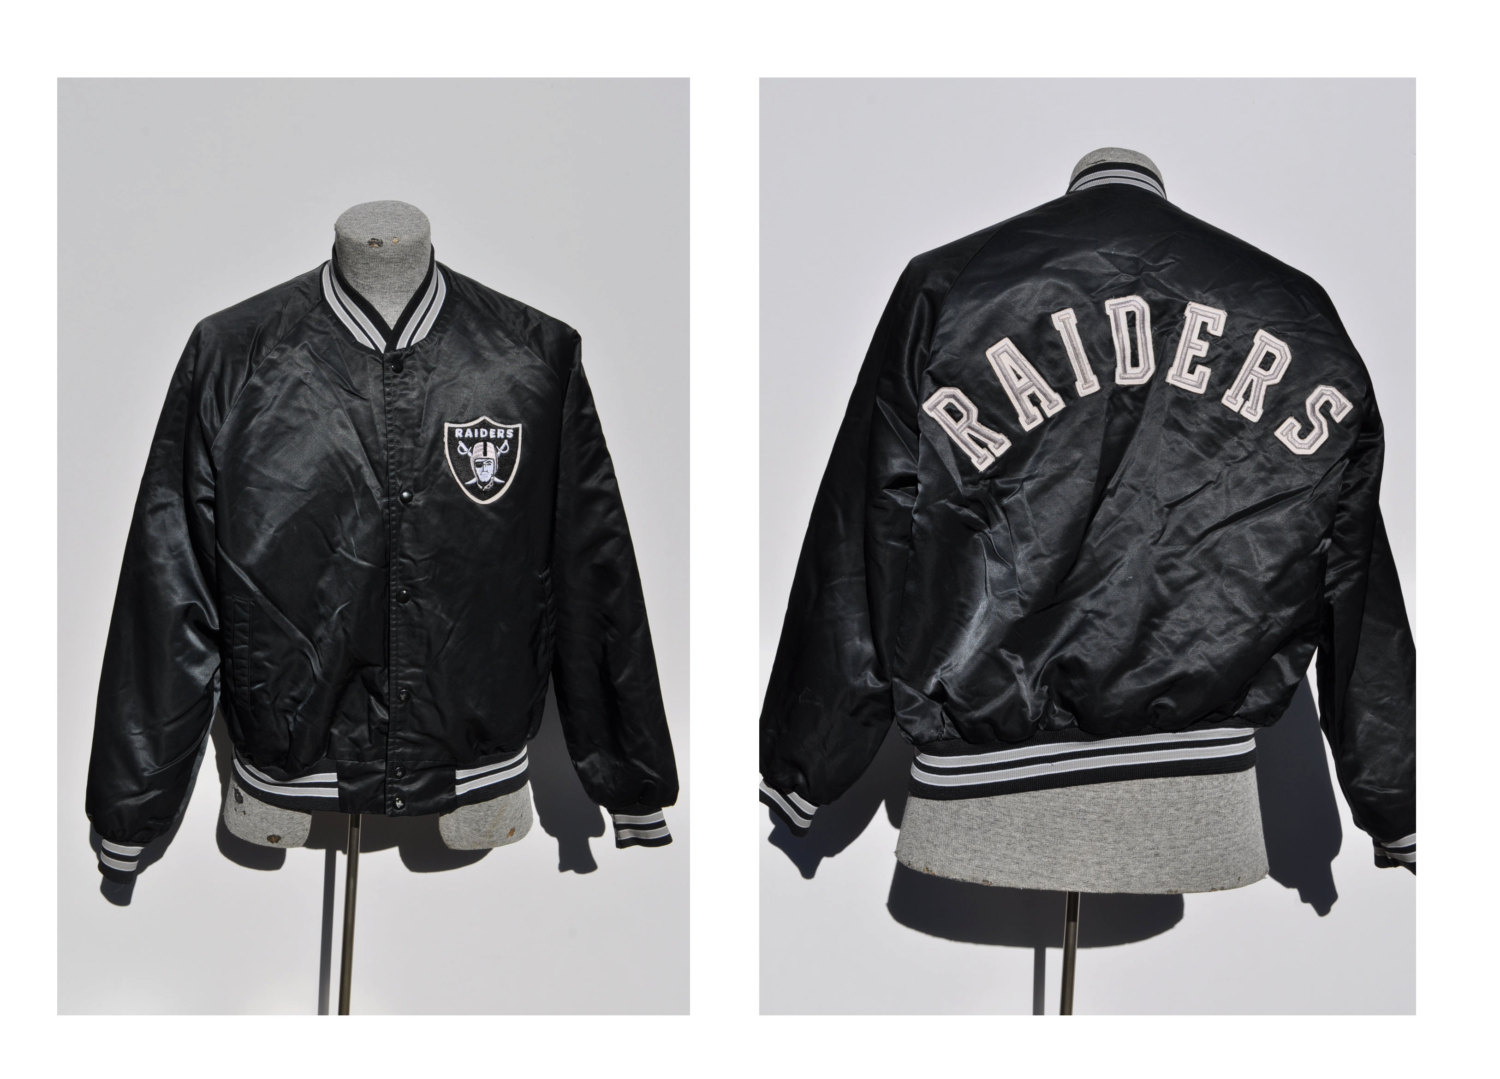 Raiders Letterman Jacket | Home Shopping Network Nfl | Raiders Coat